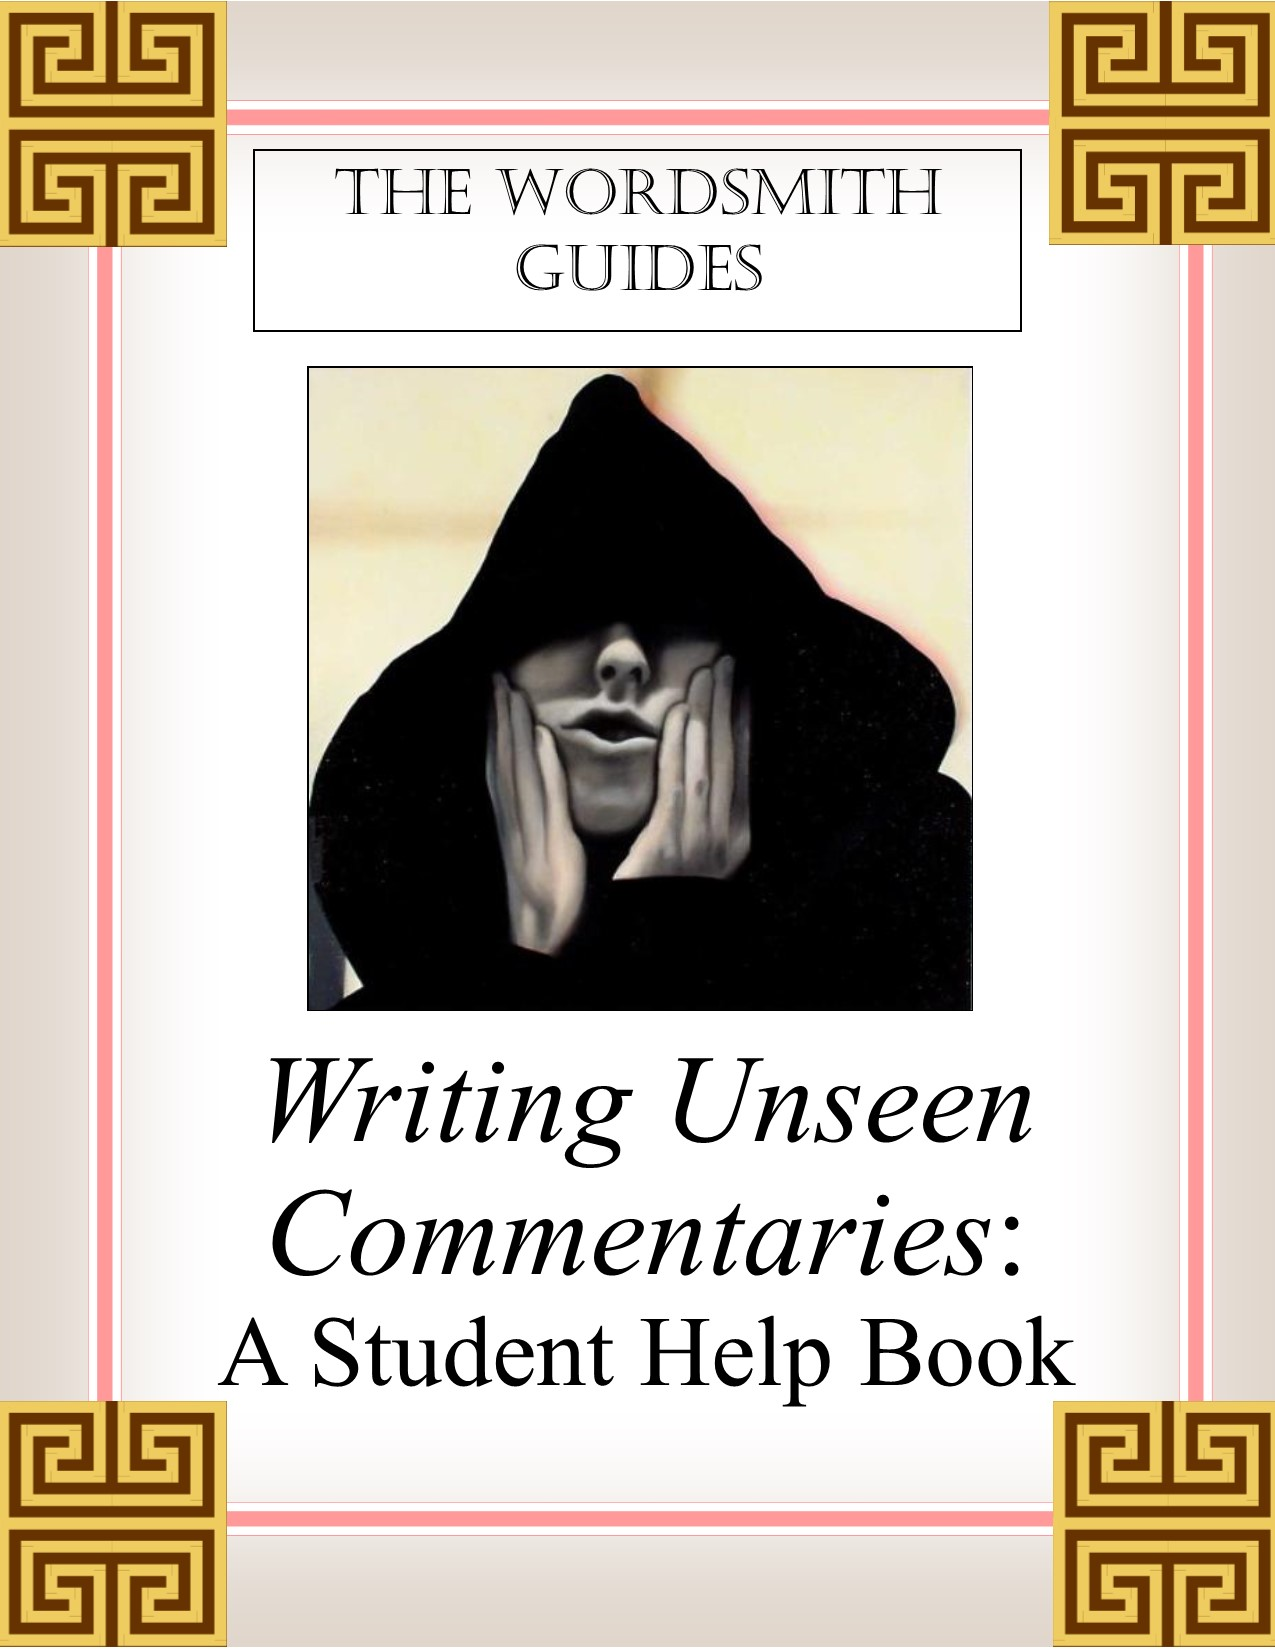 Writing-Unseen-Commentaries-A-Student-Help-Book-Student-Copy